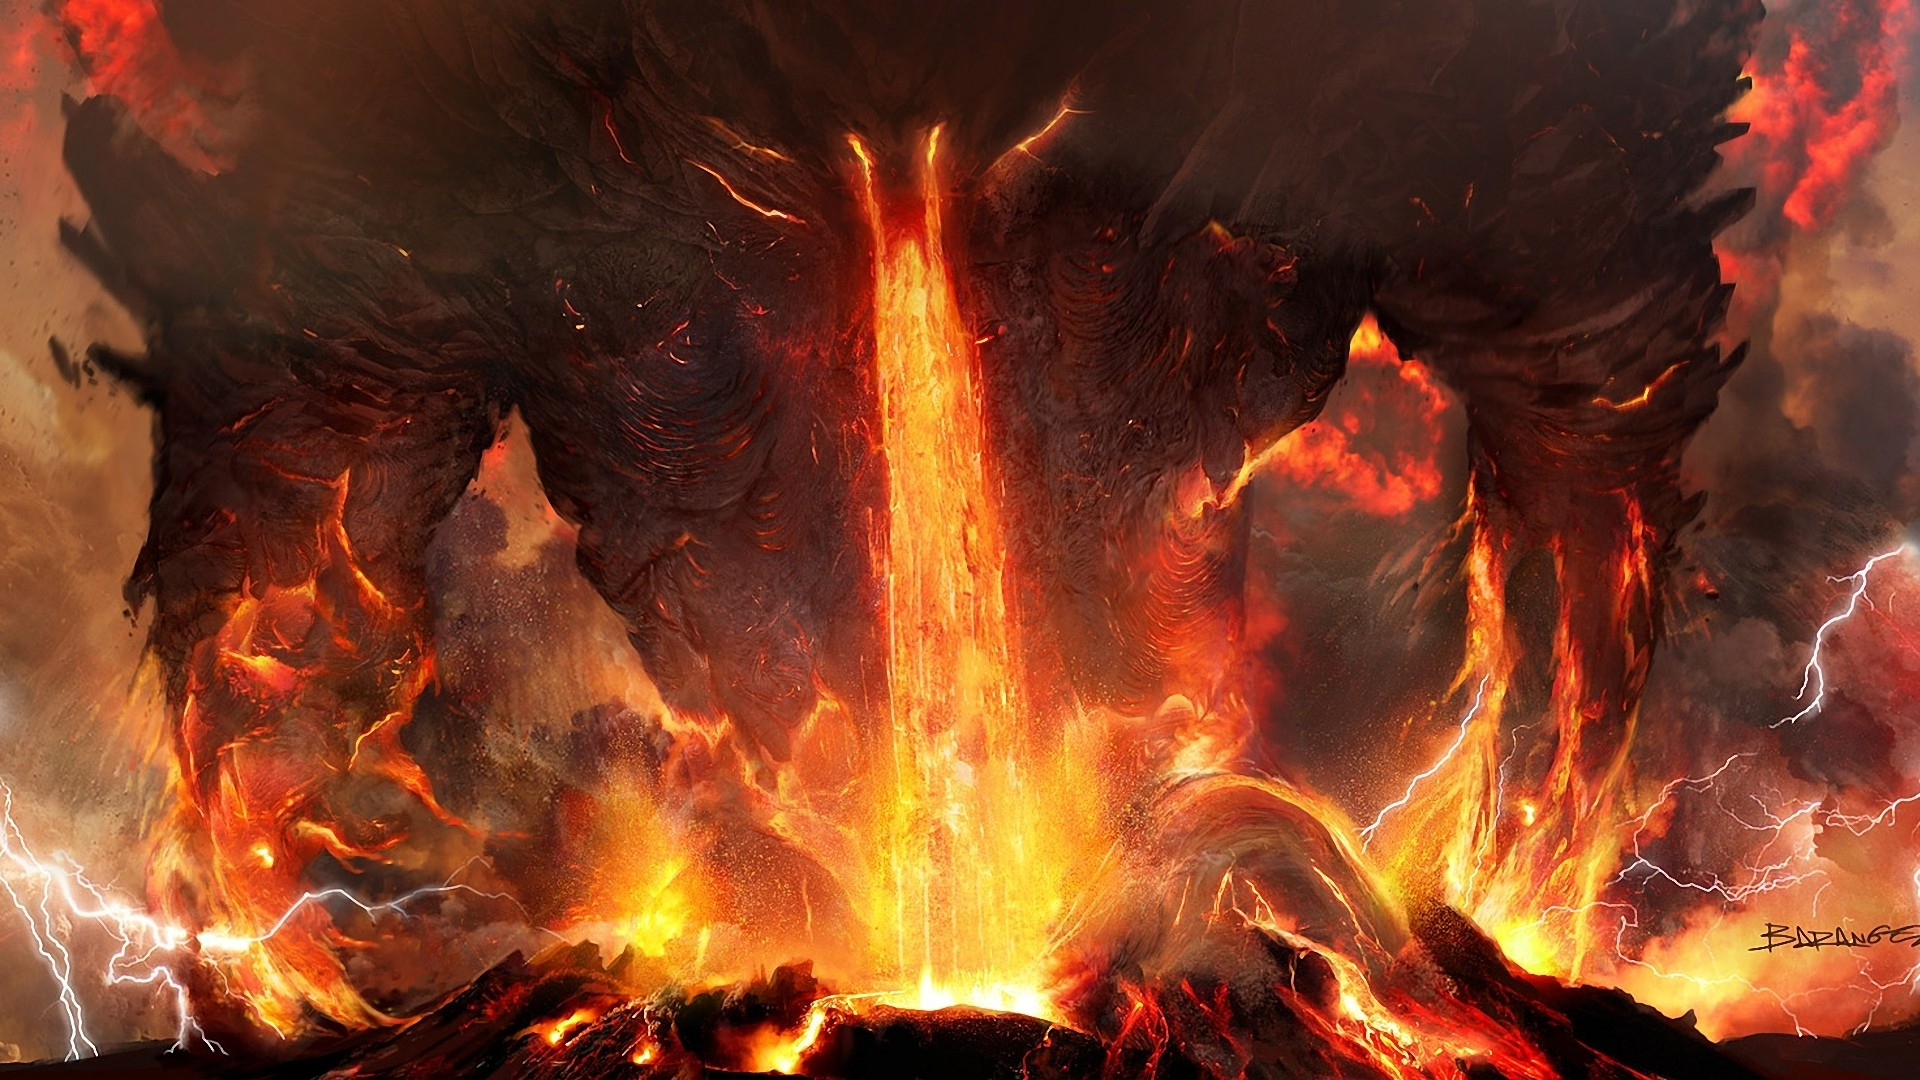 Epic Titan Fall Wallpaper Art Titanium Anger Fire Lightning Lava Volcano Ash Demon